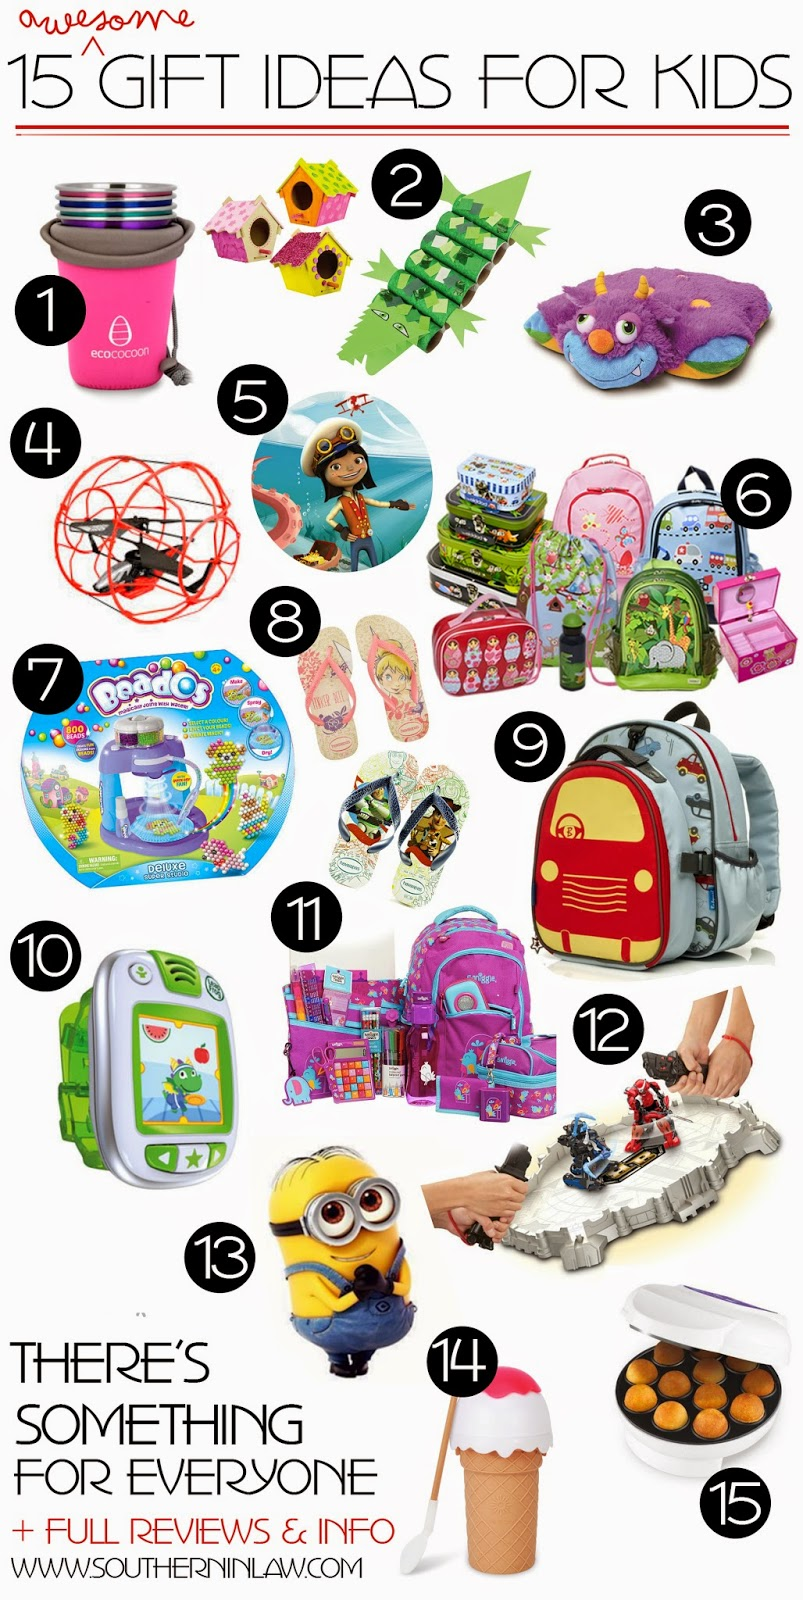 The Ultimate Kids Gift Guide for 2014